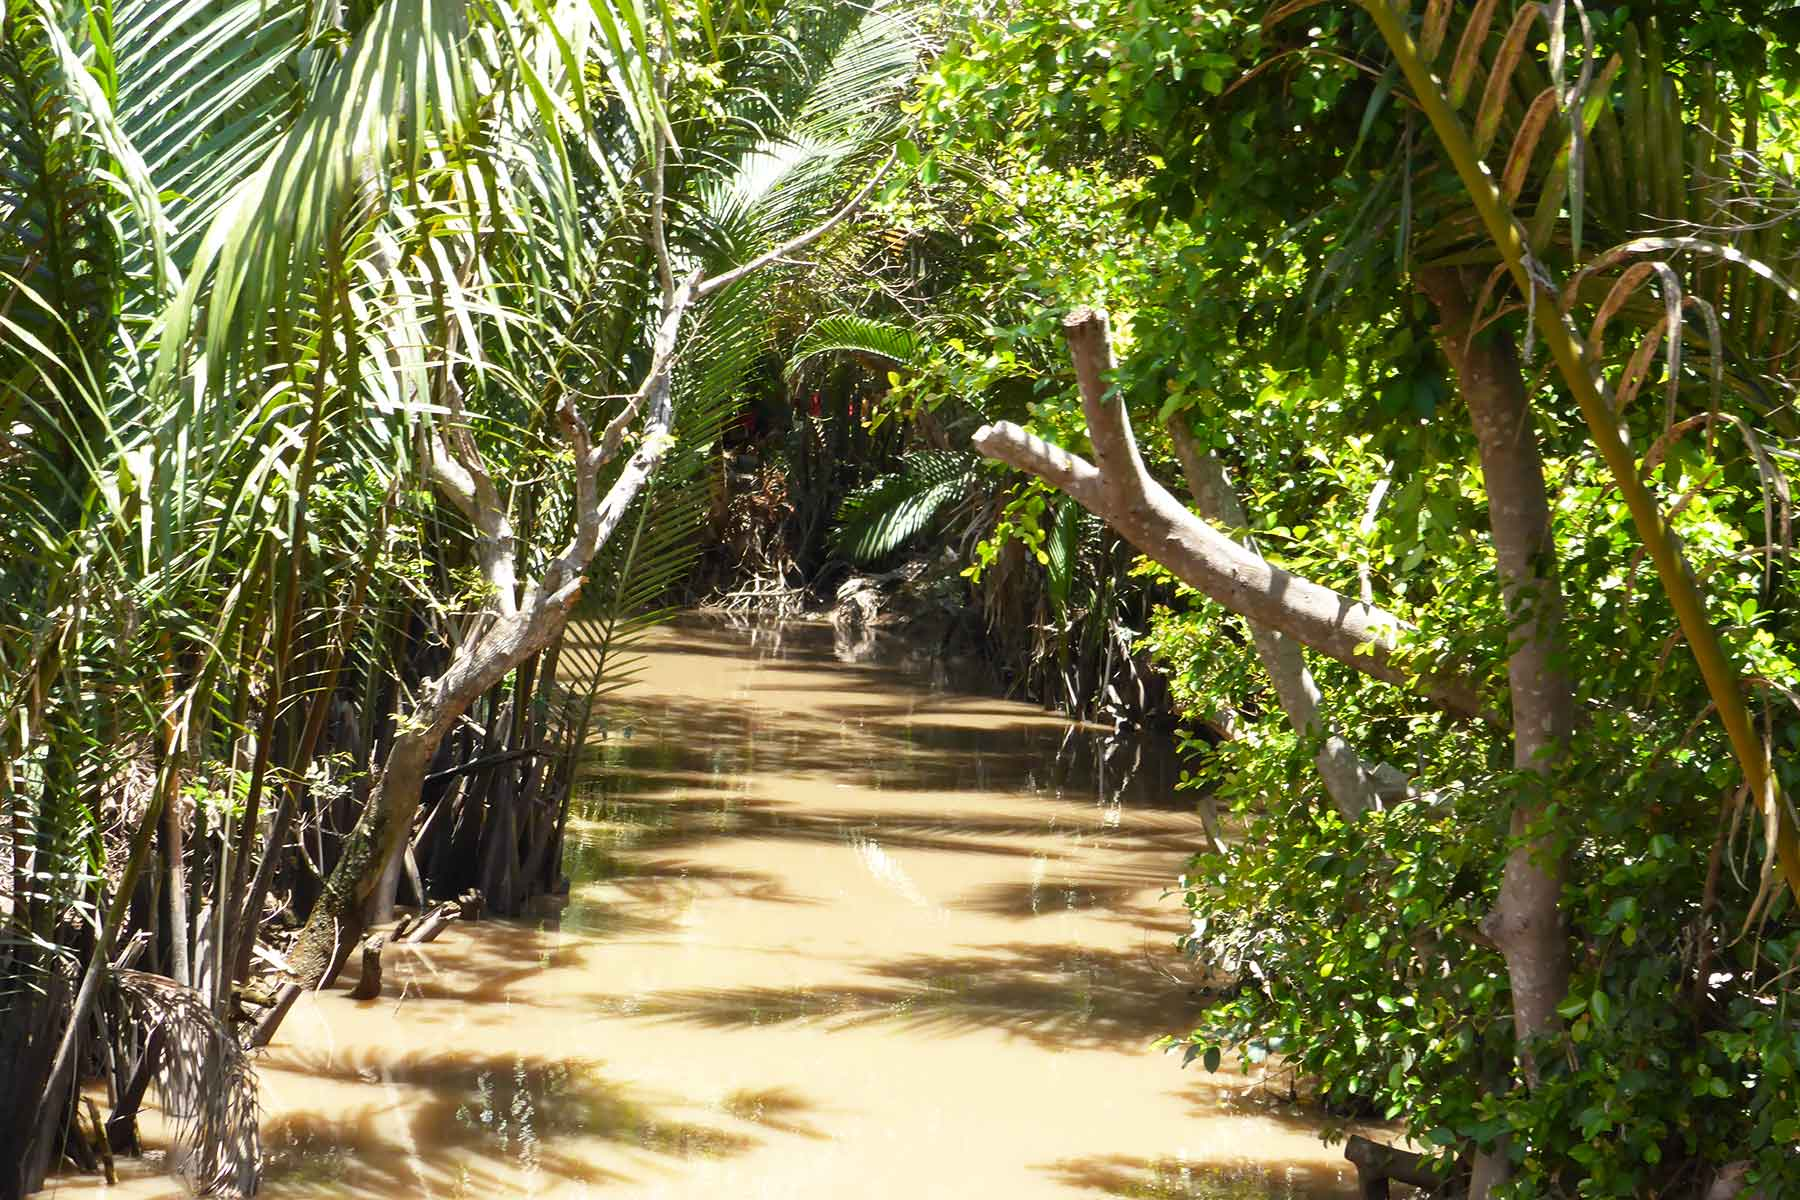 Mekong Delta discover tour with small group from Saigon | TuraVietnam